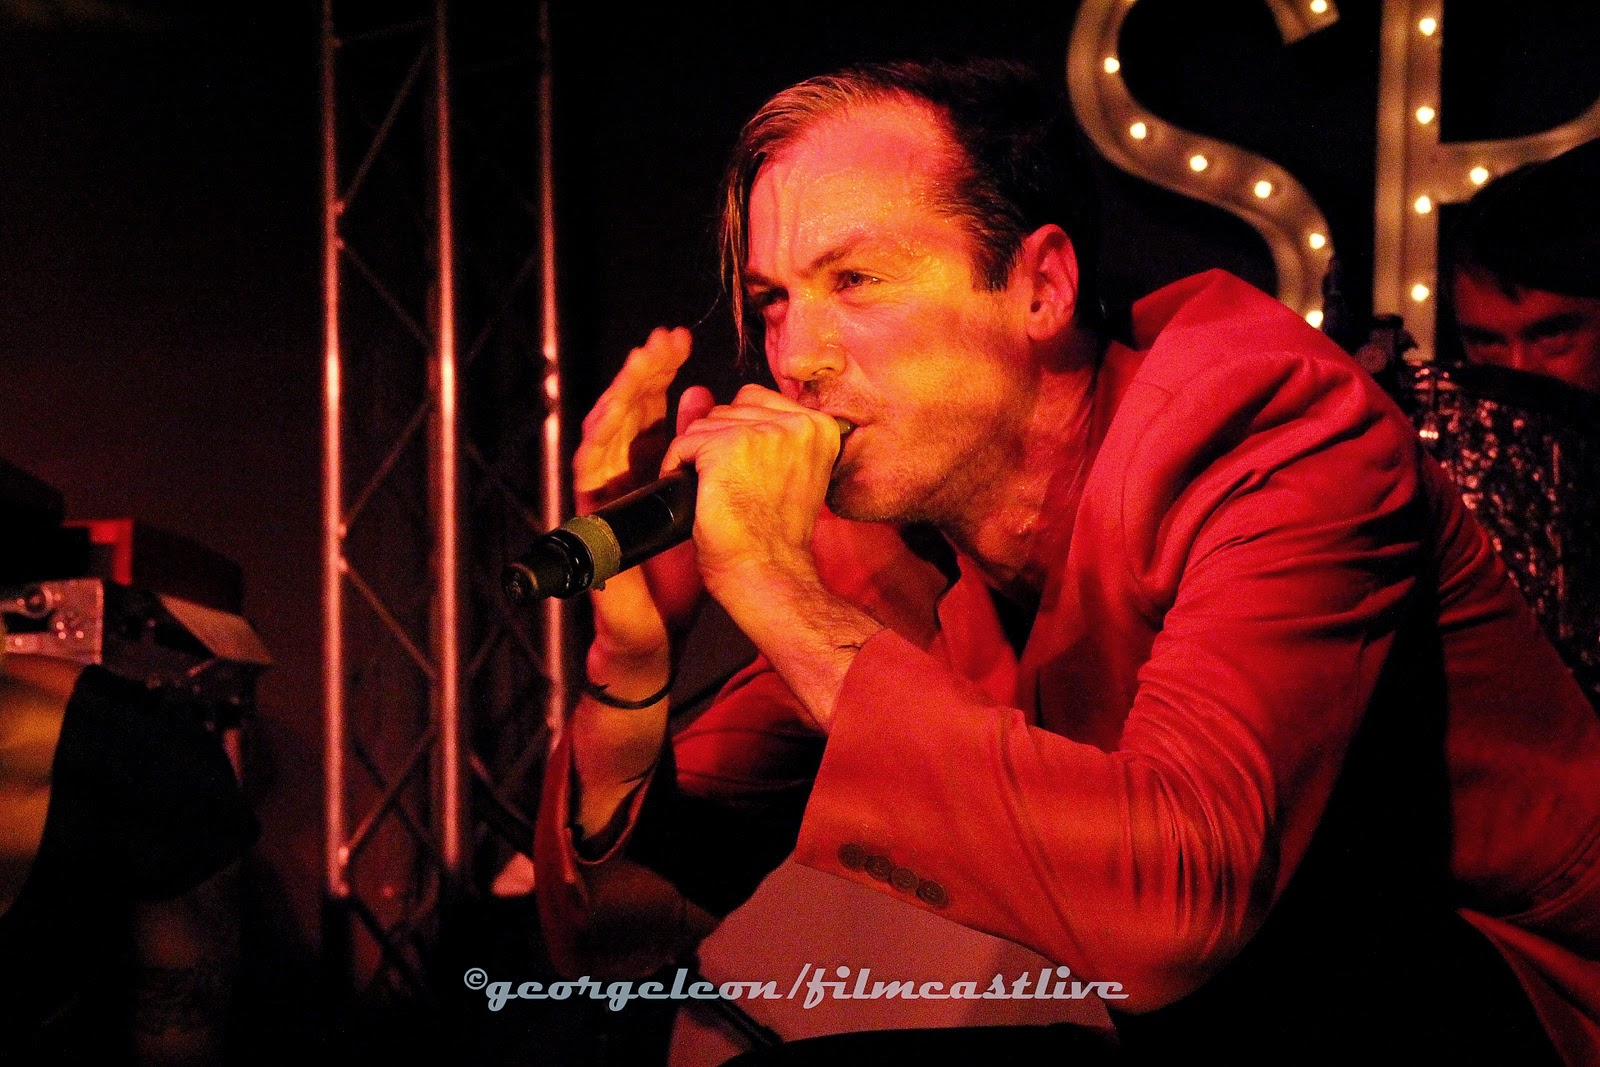 Fritz & The Tantrums 7  ©george leon still & motion